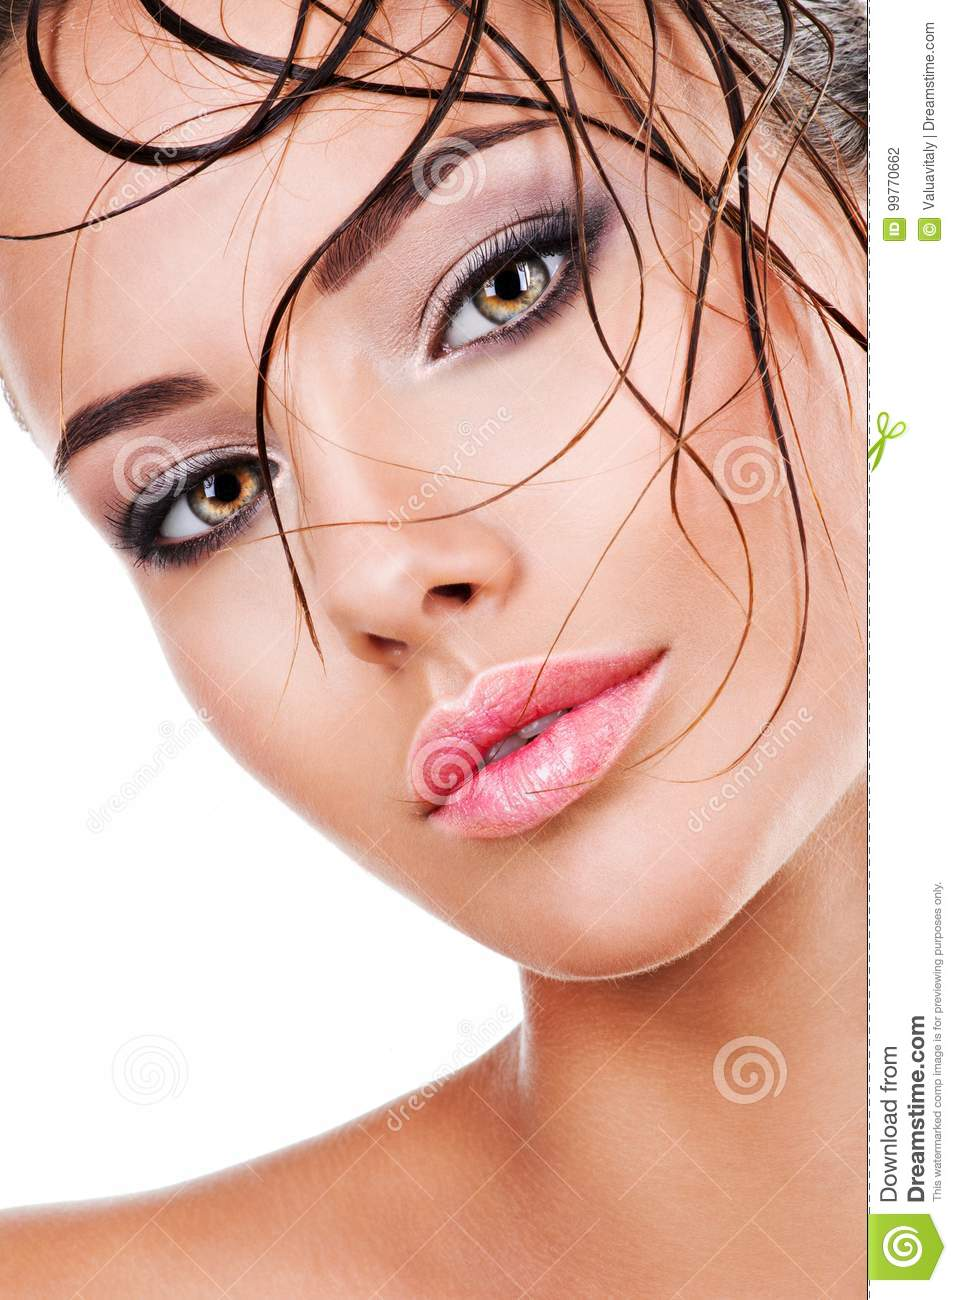 Beautiful Face Of A Woman With Dark Brown Eye Makeup Stock Photo